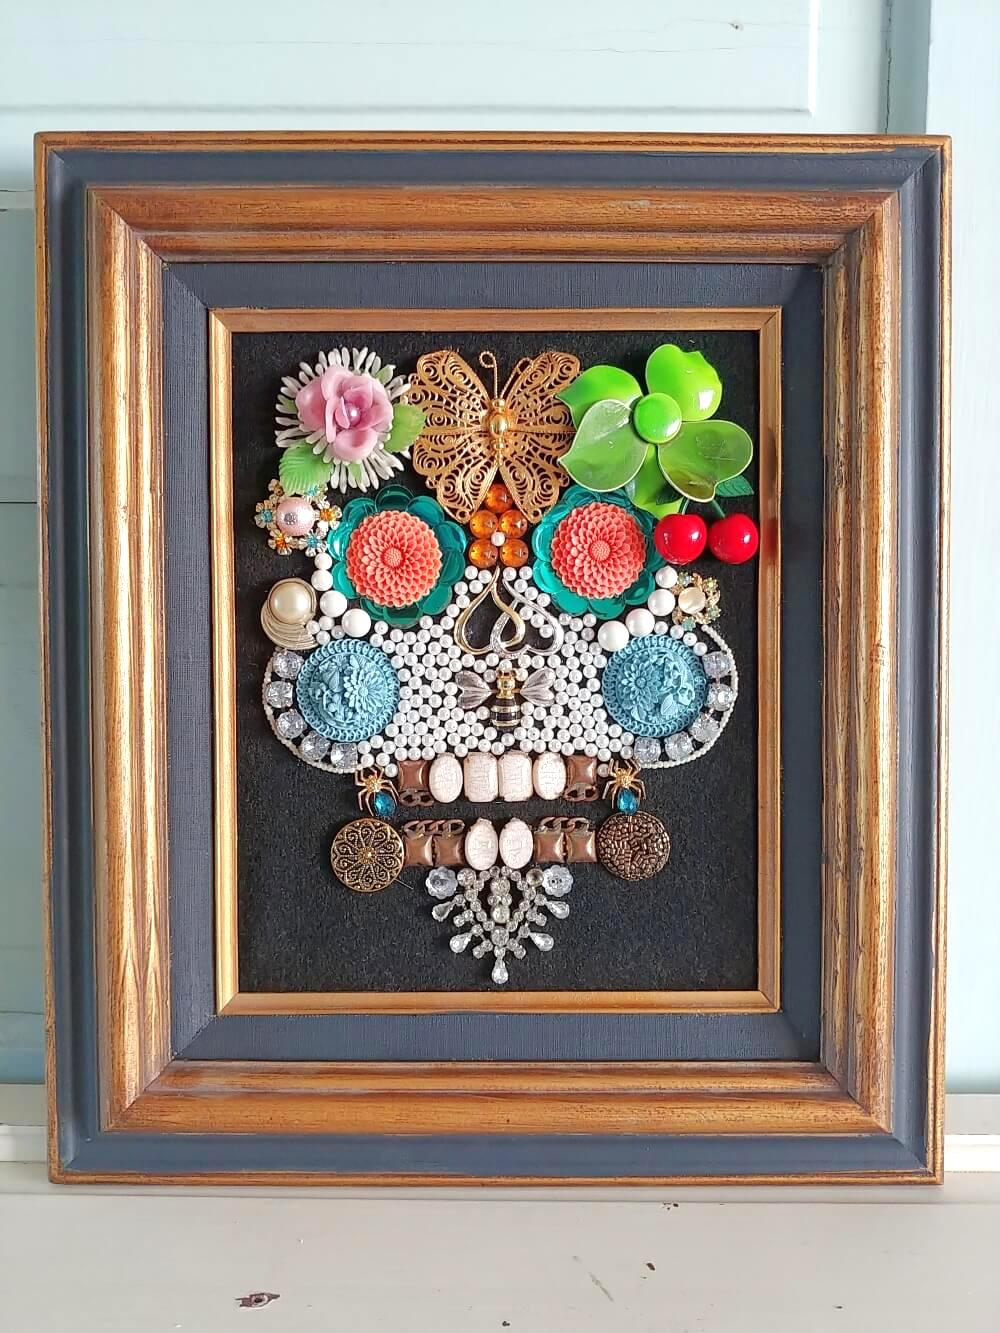 Vintage jewelry skull picture by Little Vintage Cottage, featured on DIY Salvaged Junk Projects 532 on Funky Junk!